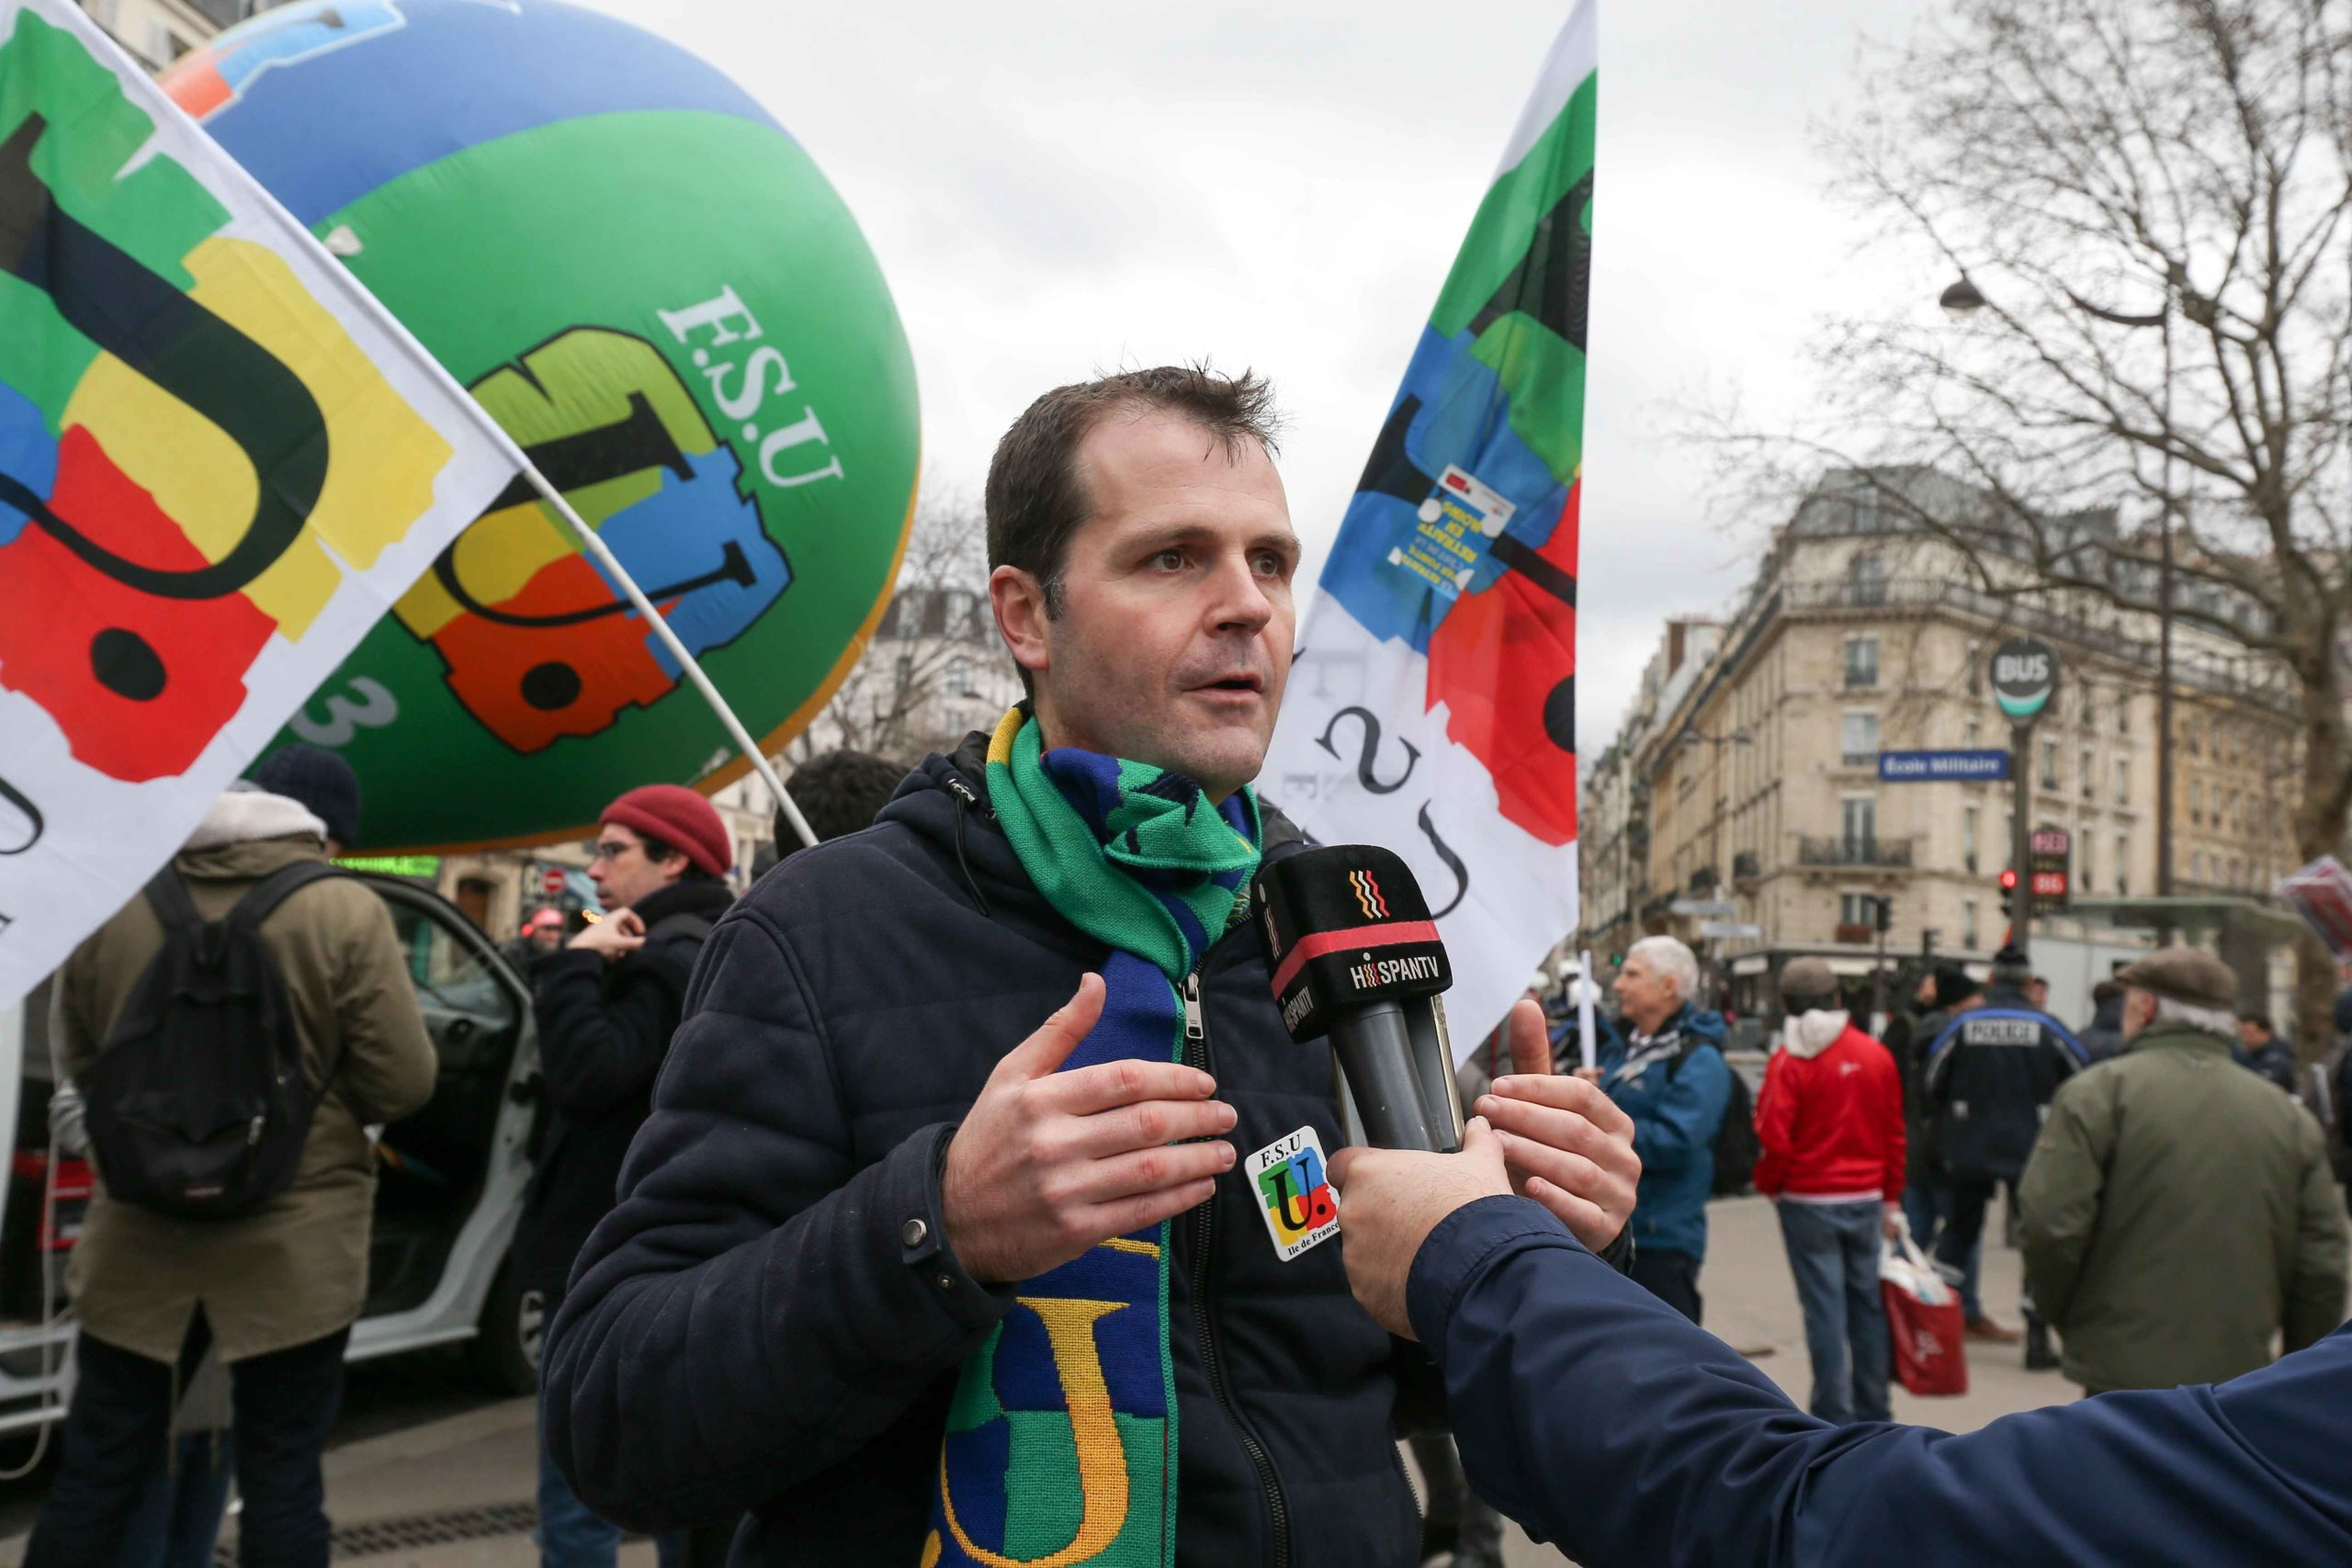 French FSU union leader Benoit Teste talk with the press during a demonstration in Paris on January 14, 2020, as part of a nationwide multi-sector strike against the French government's pensions overhaul.A transport strike dragged on into its 41st day on